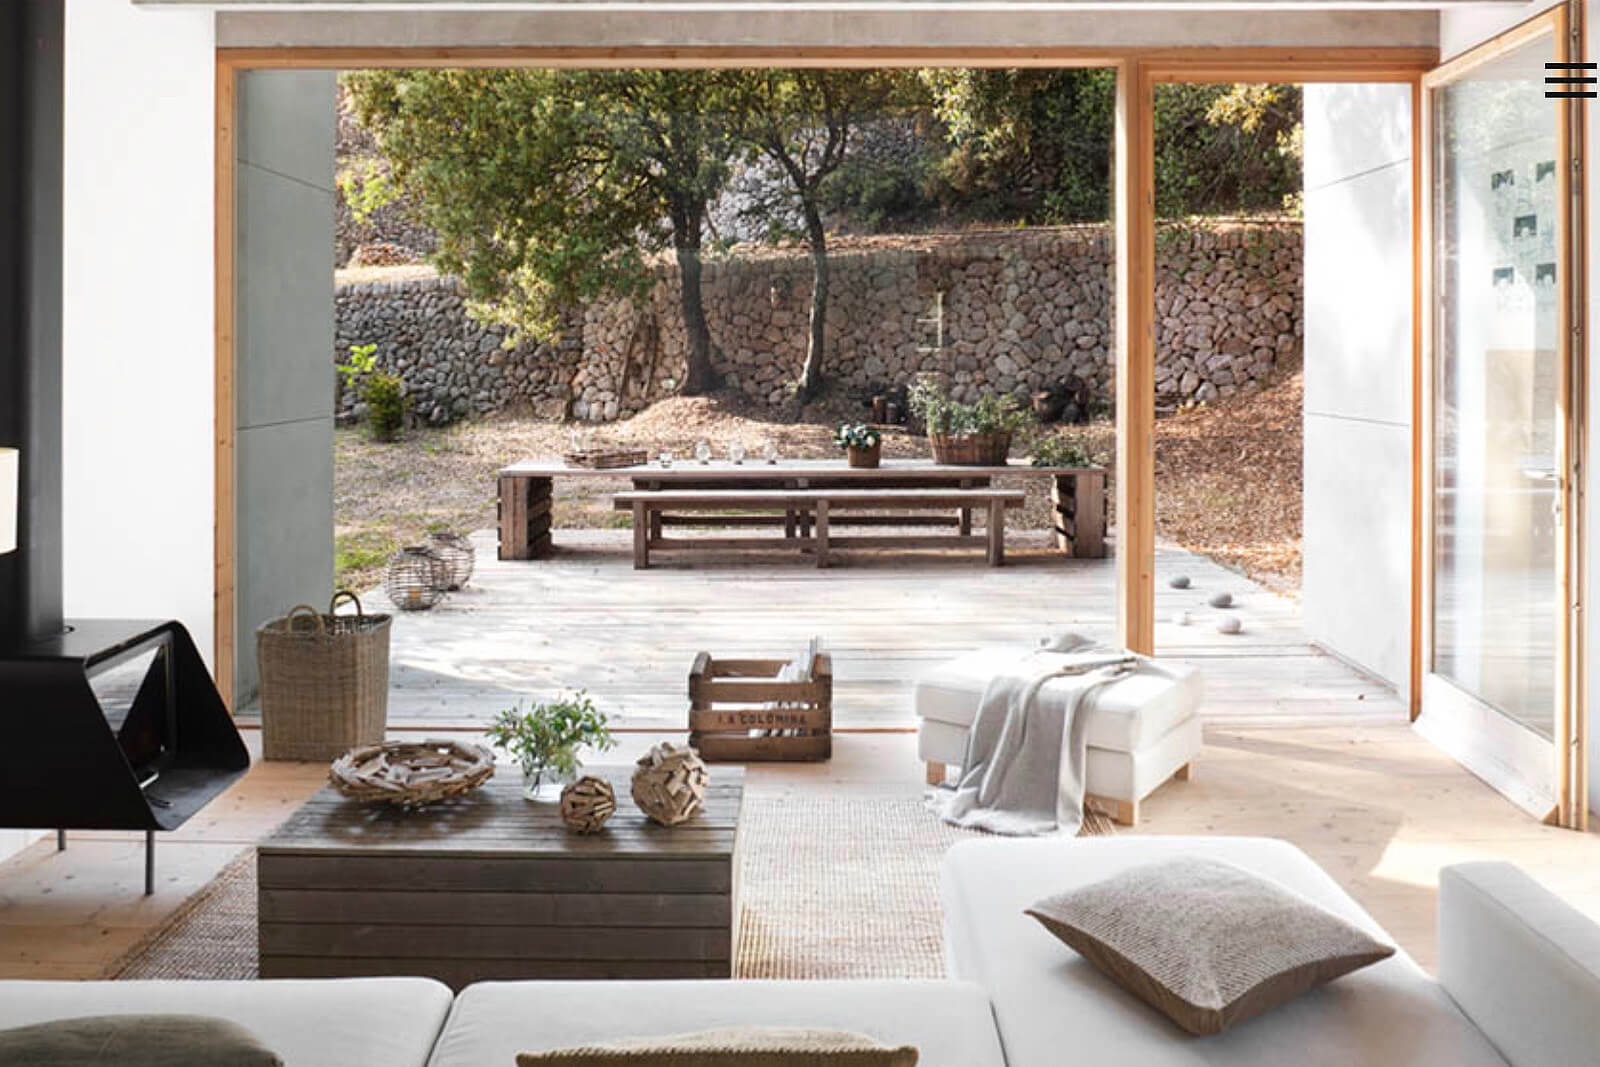 Orient House, Mallorca, Spain | vacation home rentals